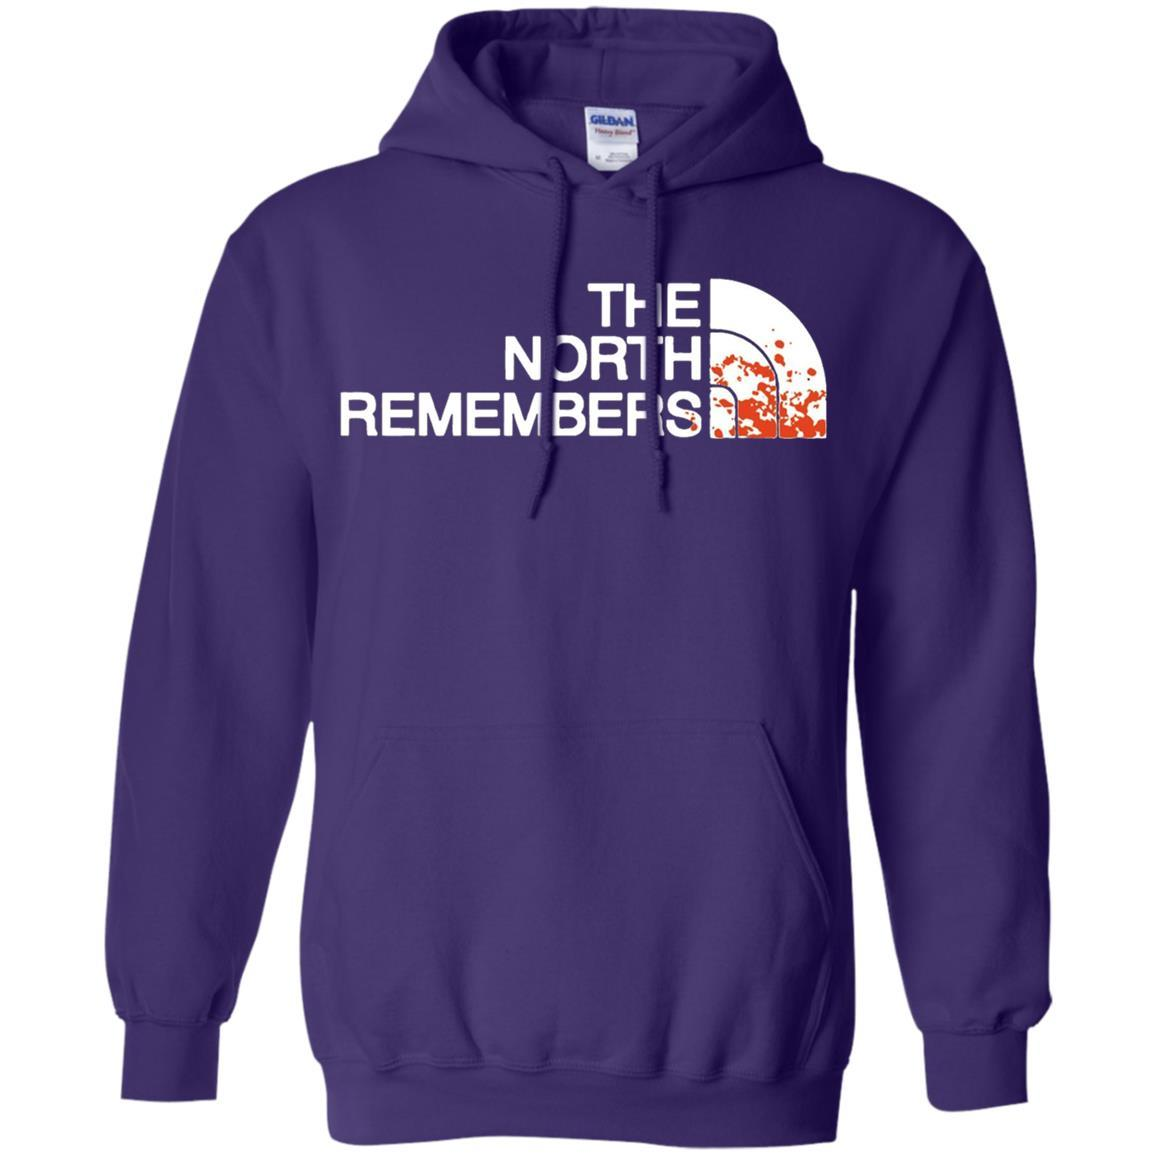 The North Remembers North Face Got - Pullover Hoodie Purple / 5XL